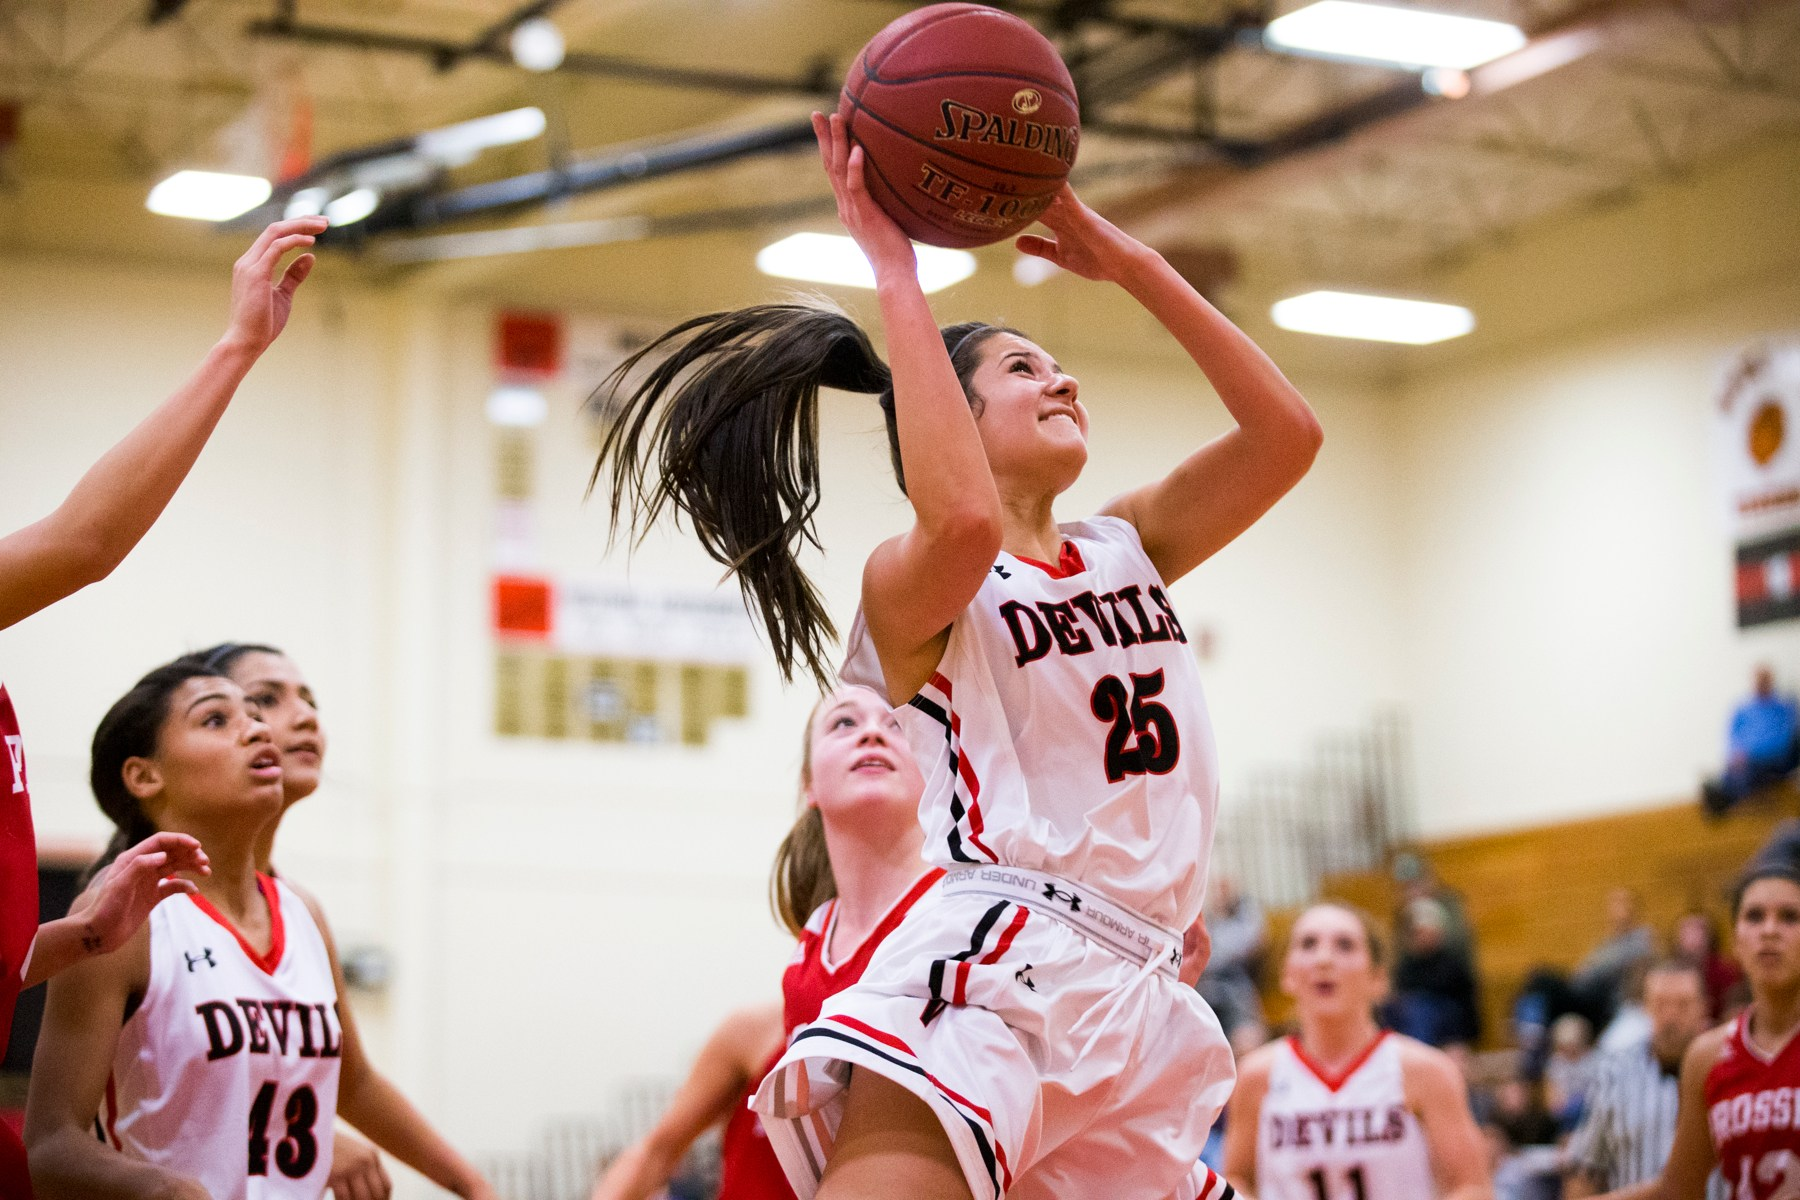 GIRLS BASKETBALL PHOTO COURTESY OF JAKE PARRISH OF THE YAKIMA HERALD-REPUBLIC